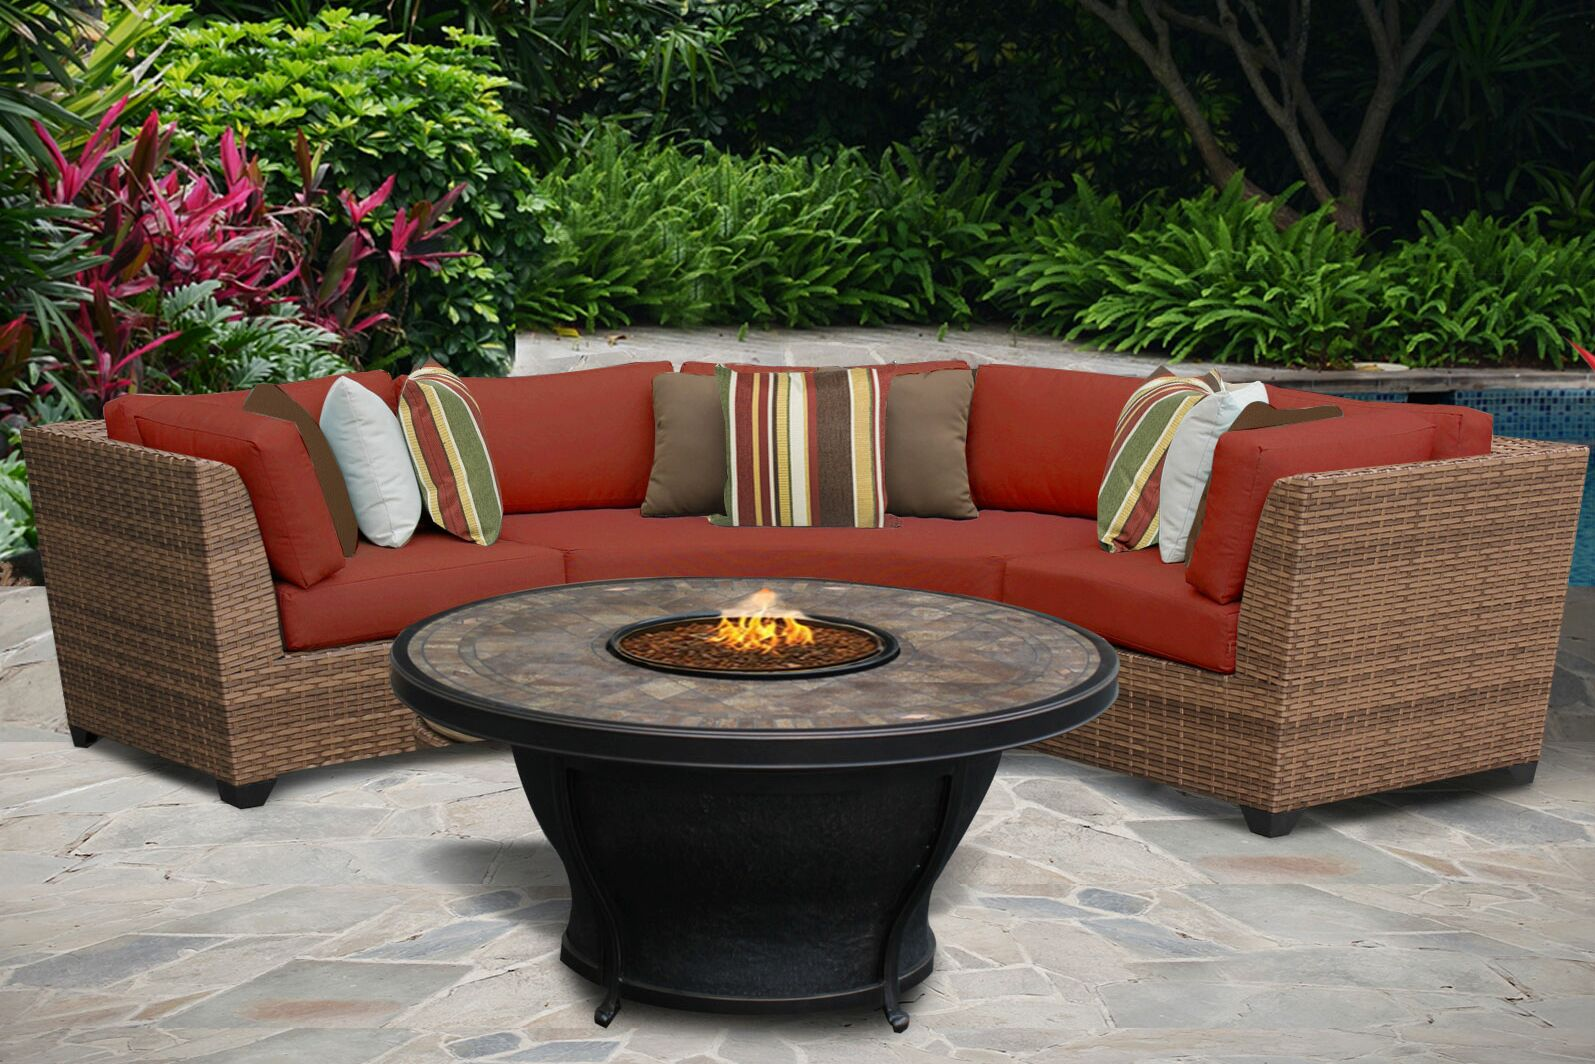 East Village 4 Piece Rattan Sectional Set with Cushions Color: Terracotta